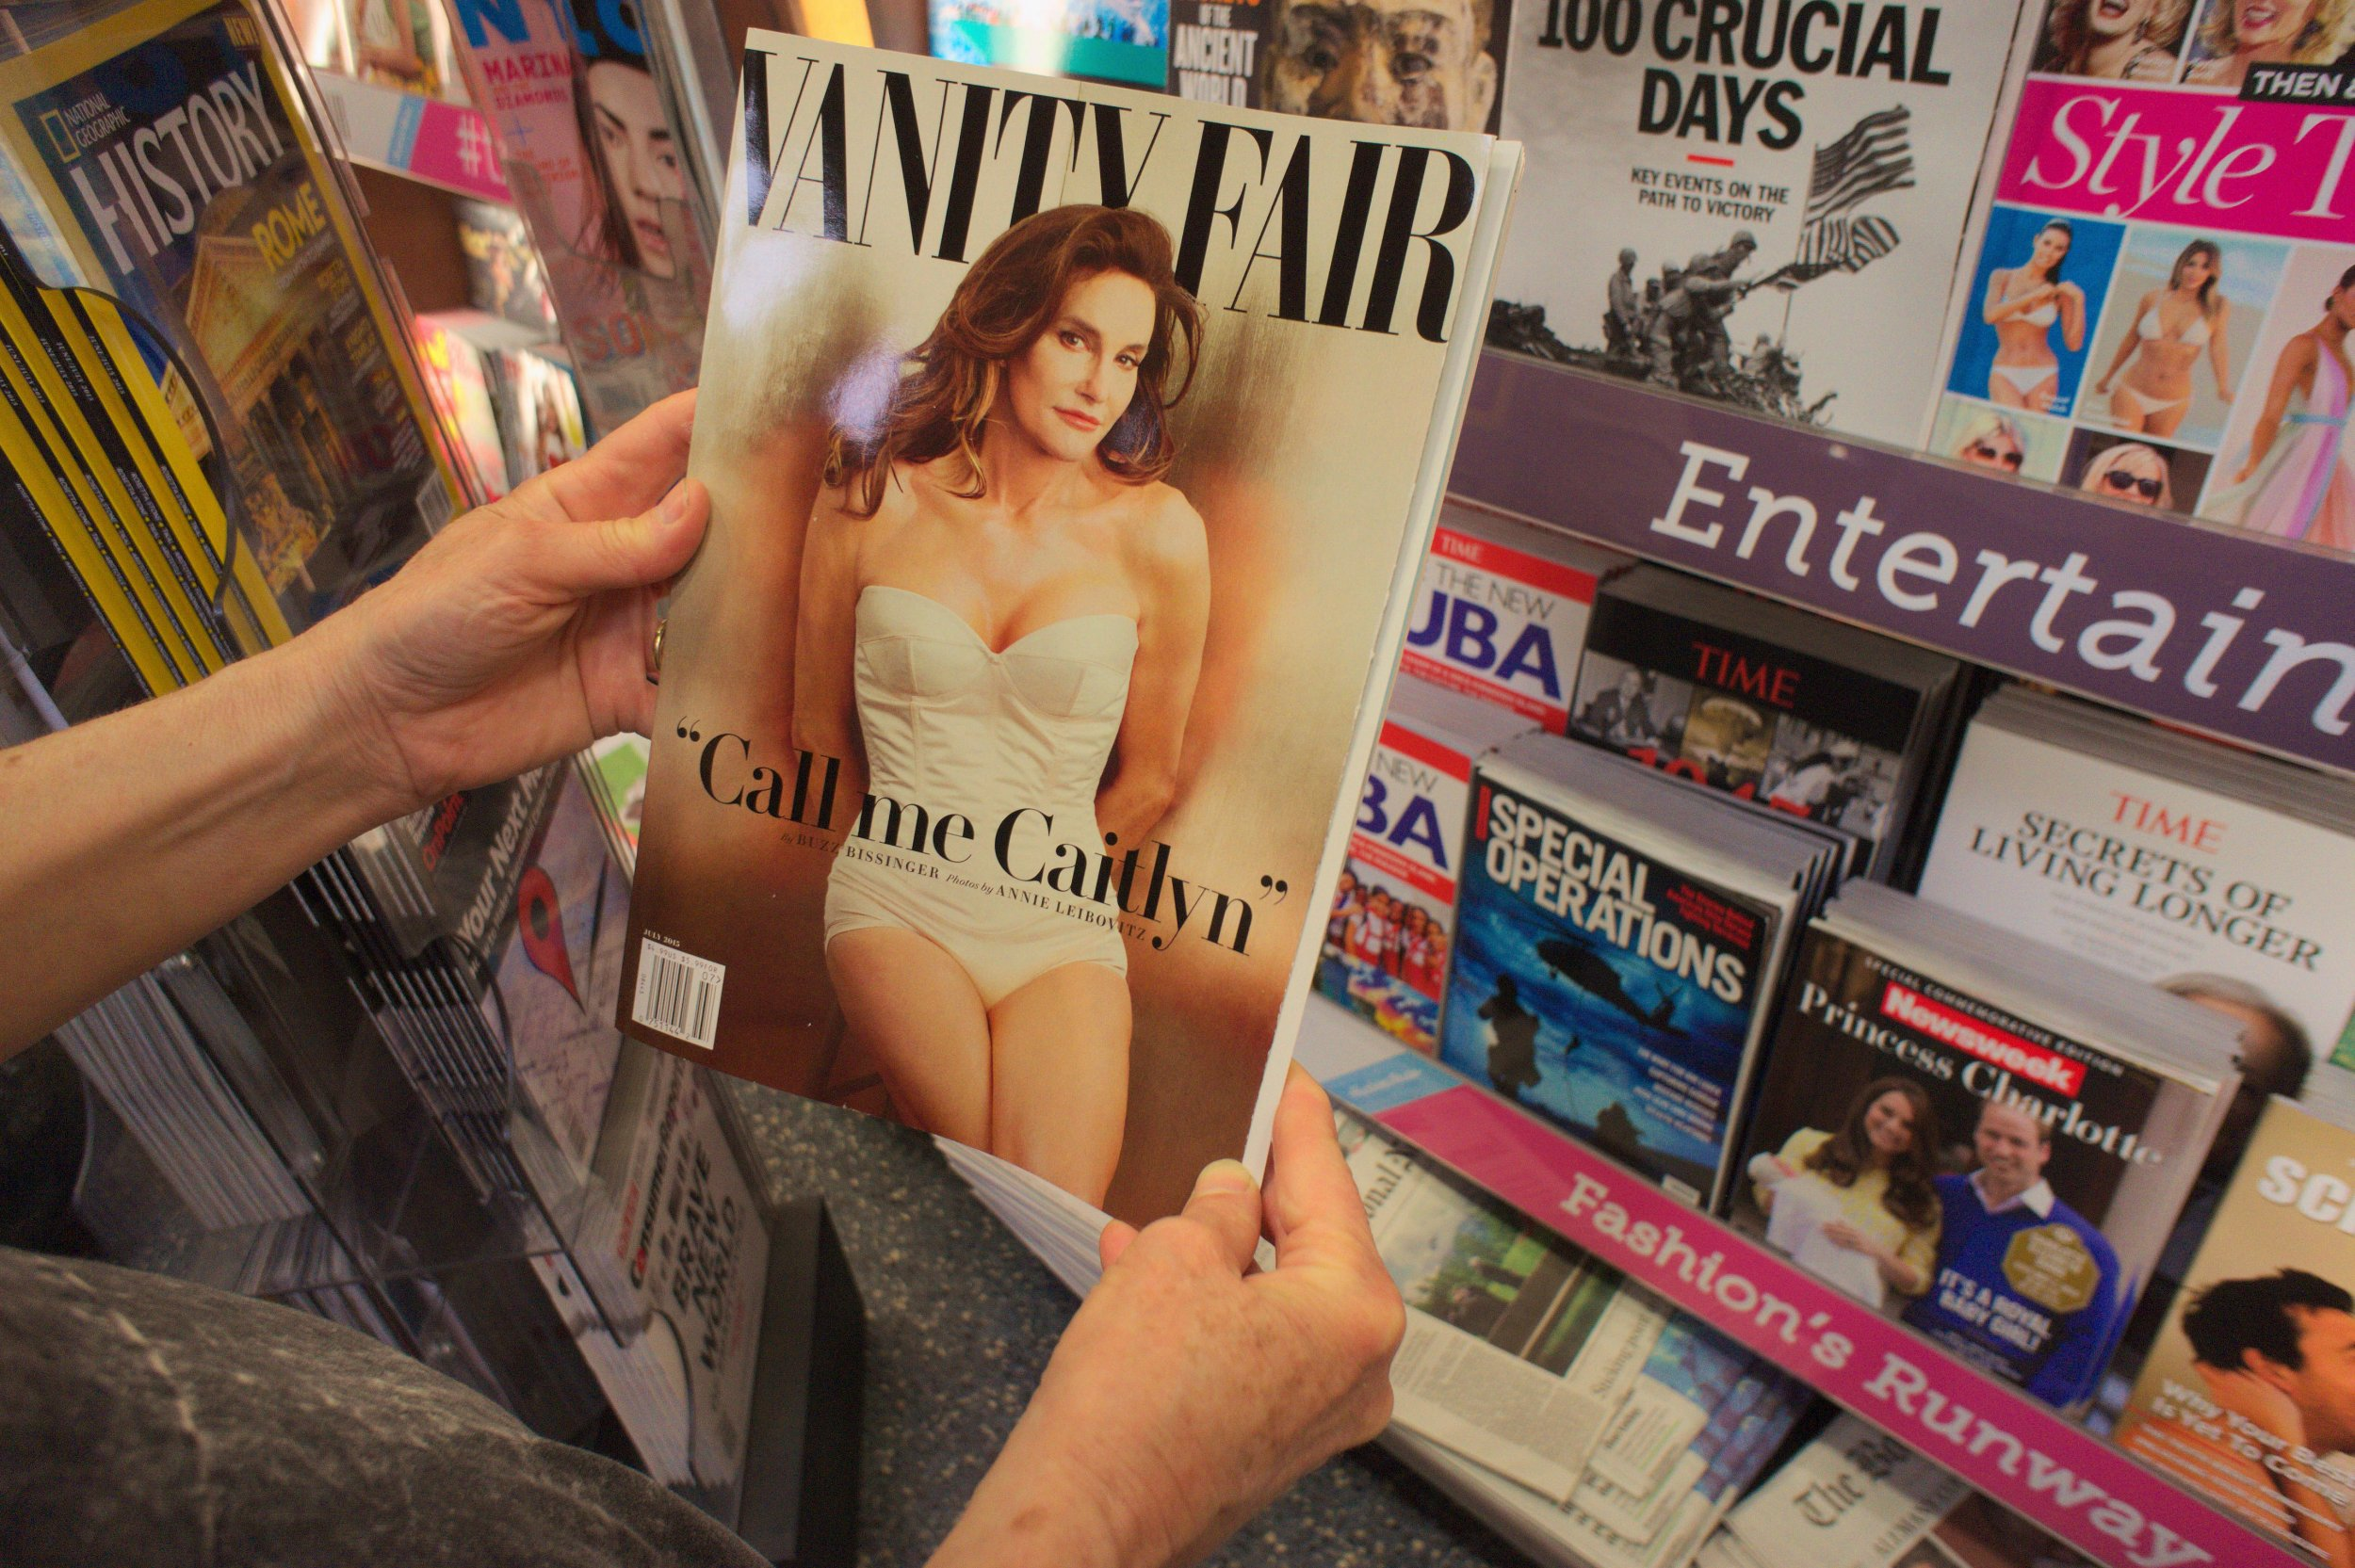 ET1G31 A reader browses a copy of the latest Vanity Fair magazine at a newsstand in New York, featuring Caitlyn Jenner, formerly Bruce Jenner on the cover and in a photo spread inside. (© Richard B. Levine)